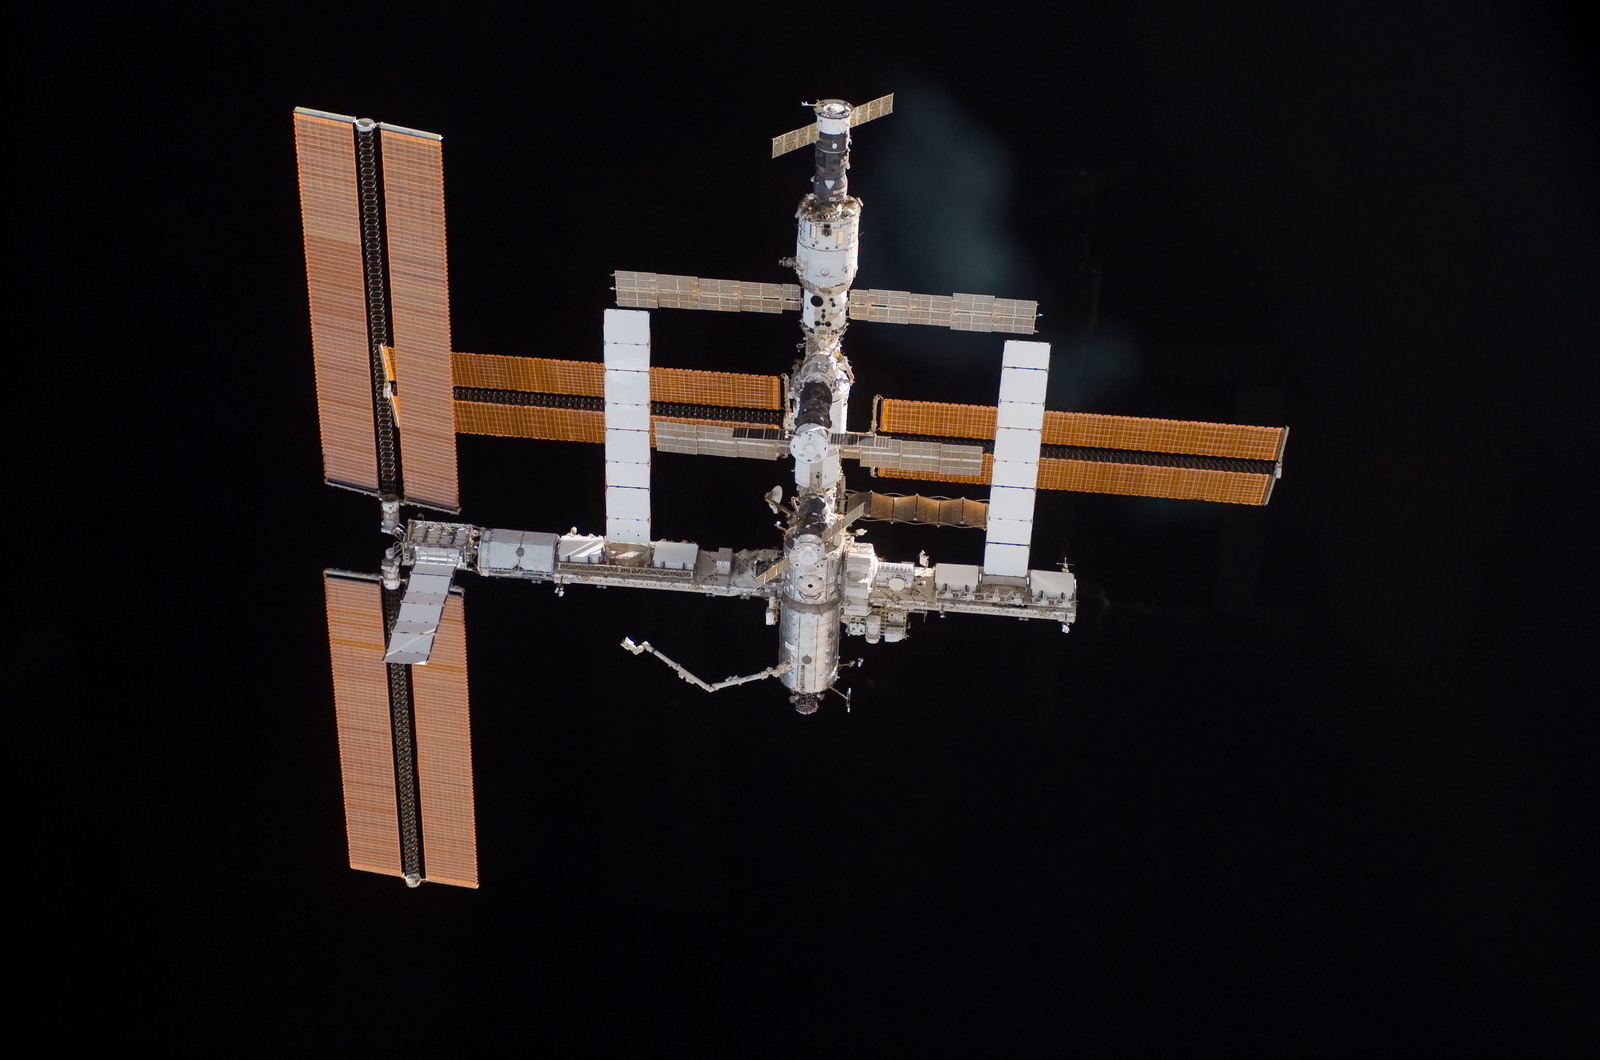 S115E06716 - STS-115 - Overall exterior view of the ISS during undocking and Flyaround Operations for STS-115 Space Shuttle Atlantis